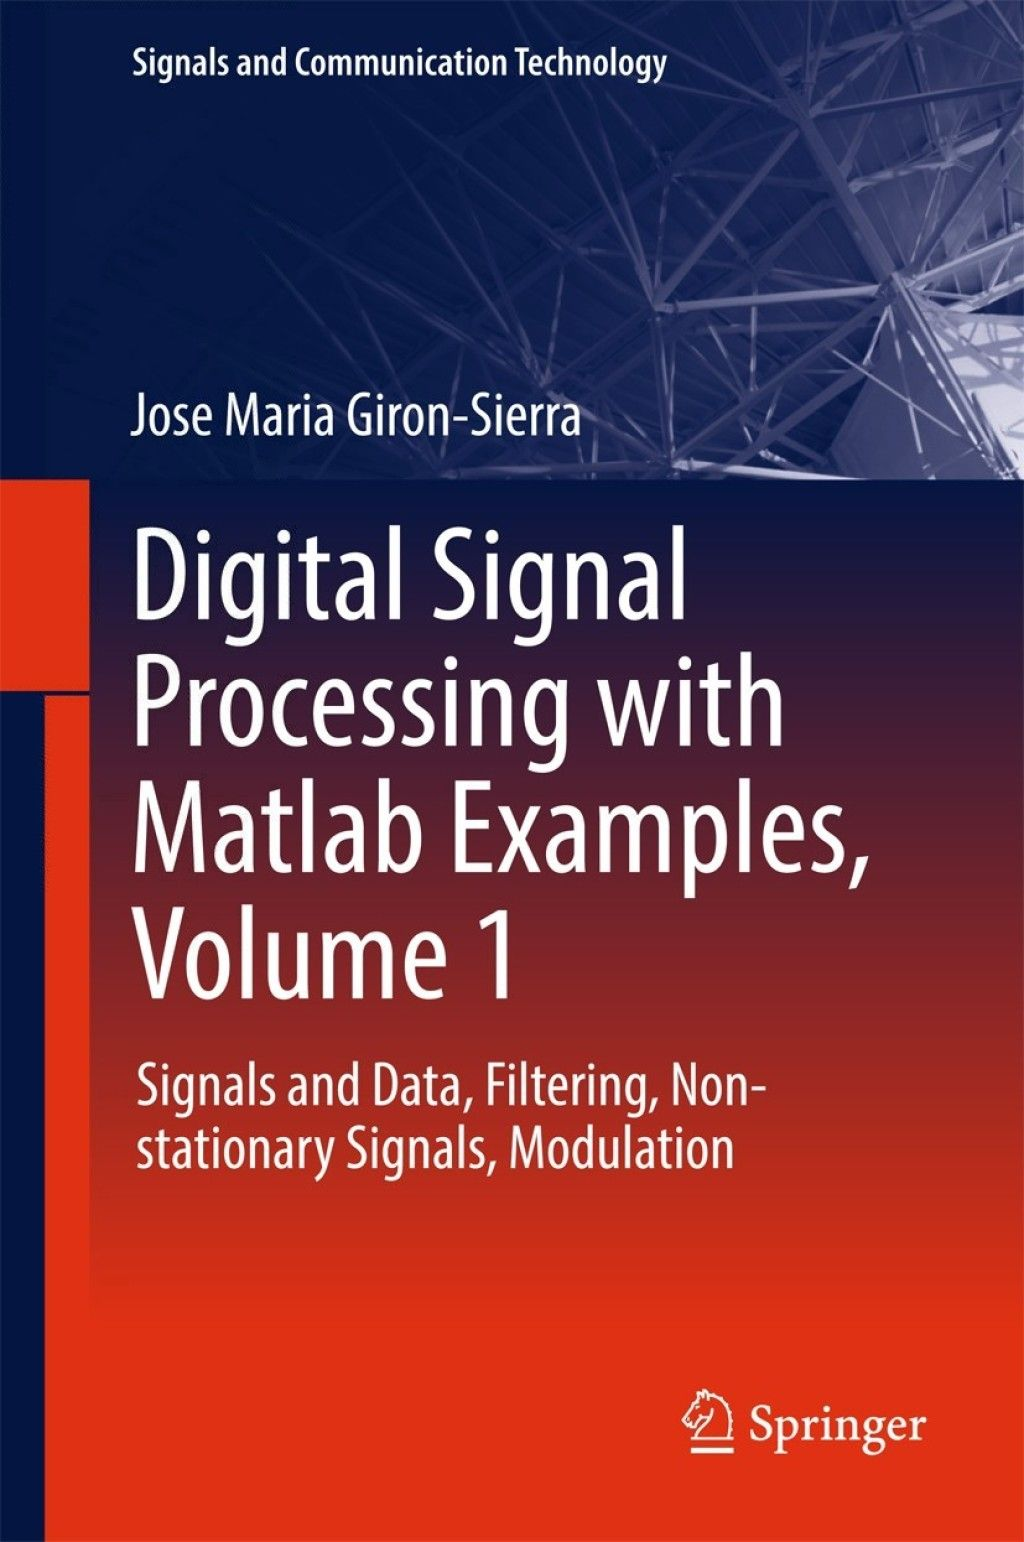 Digital Signal Processing with Matlab Examples Volume 1